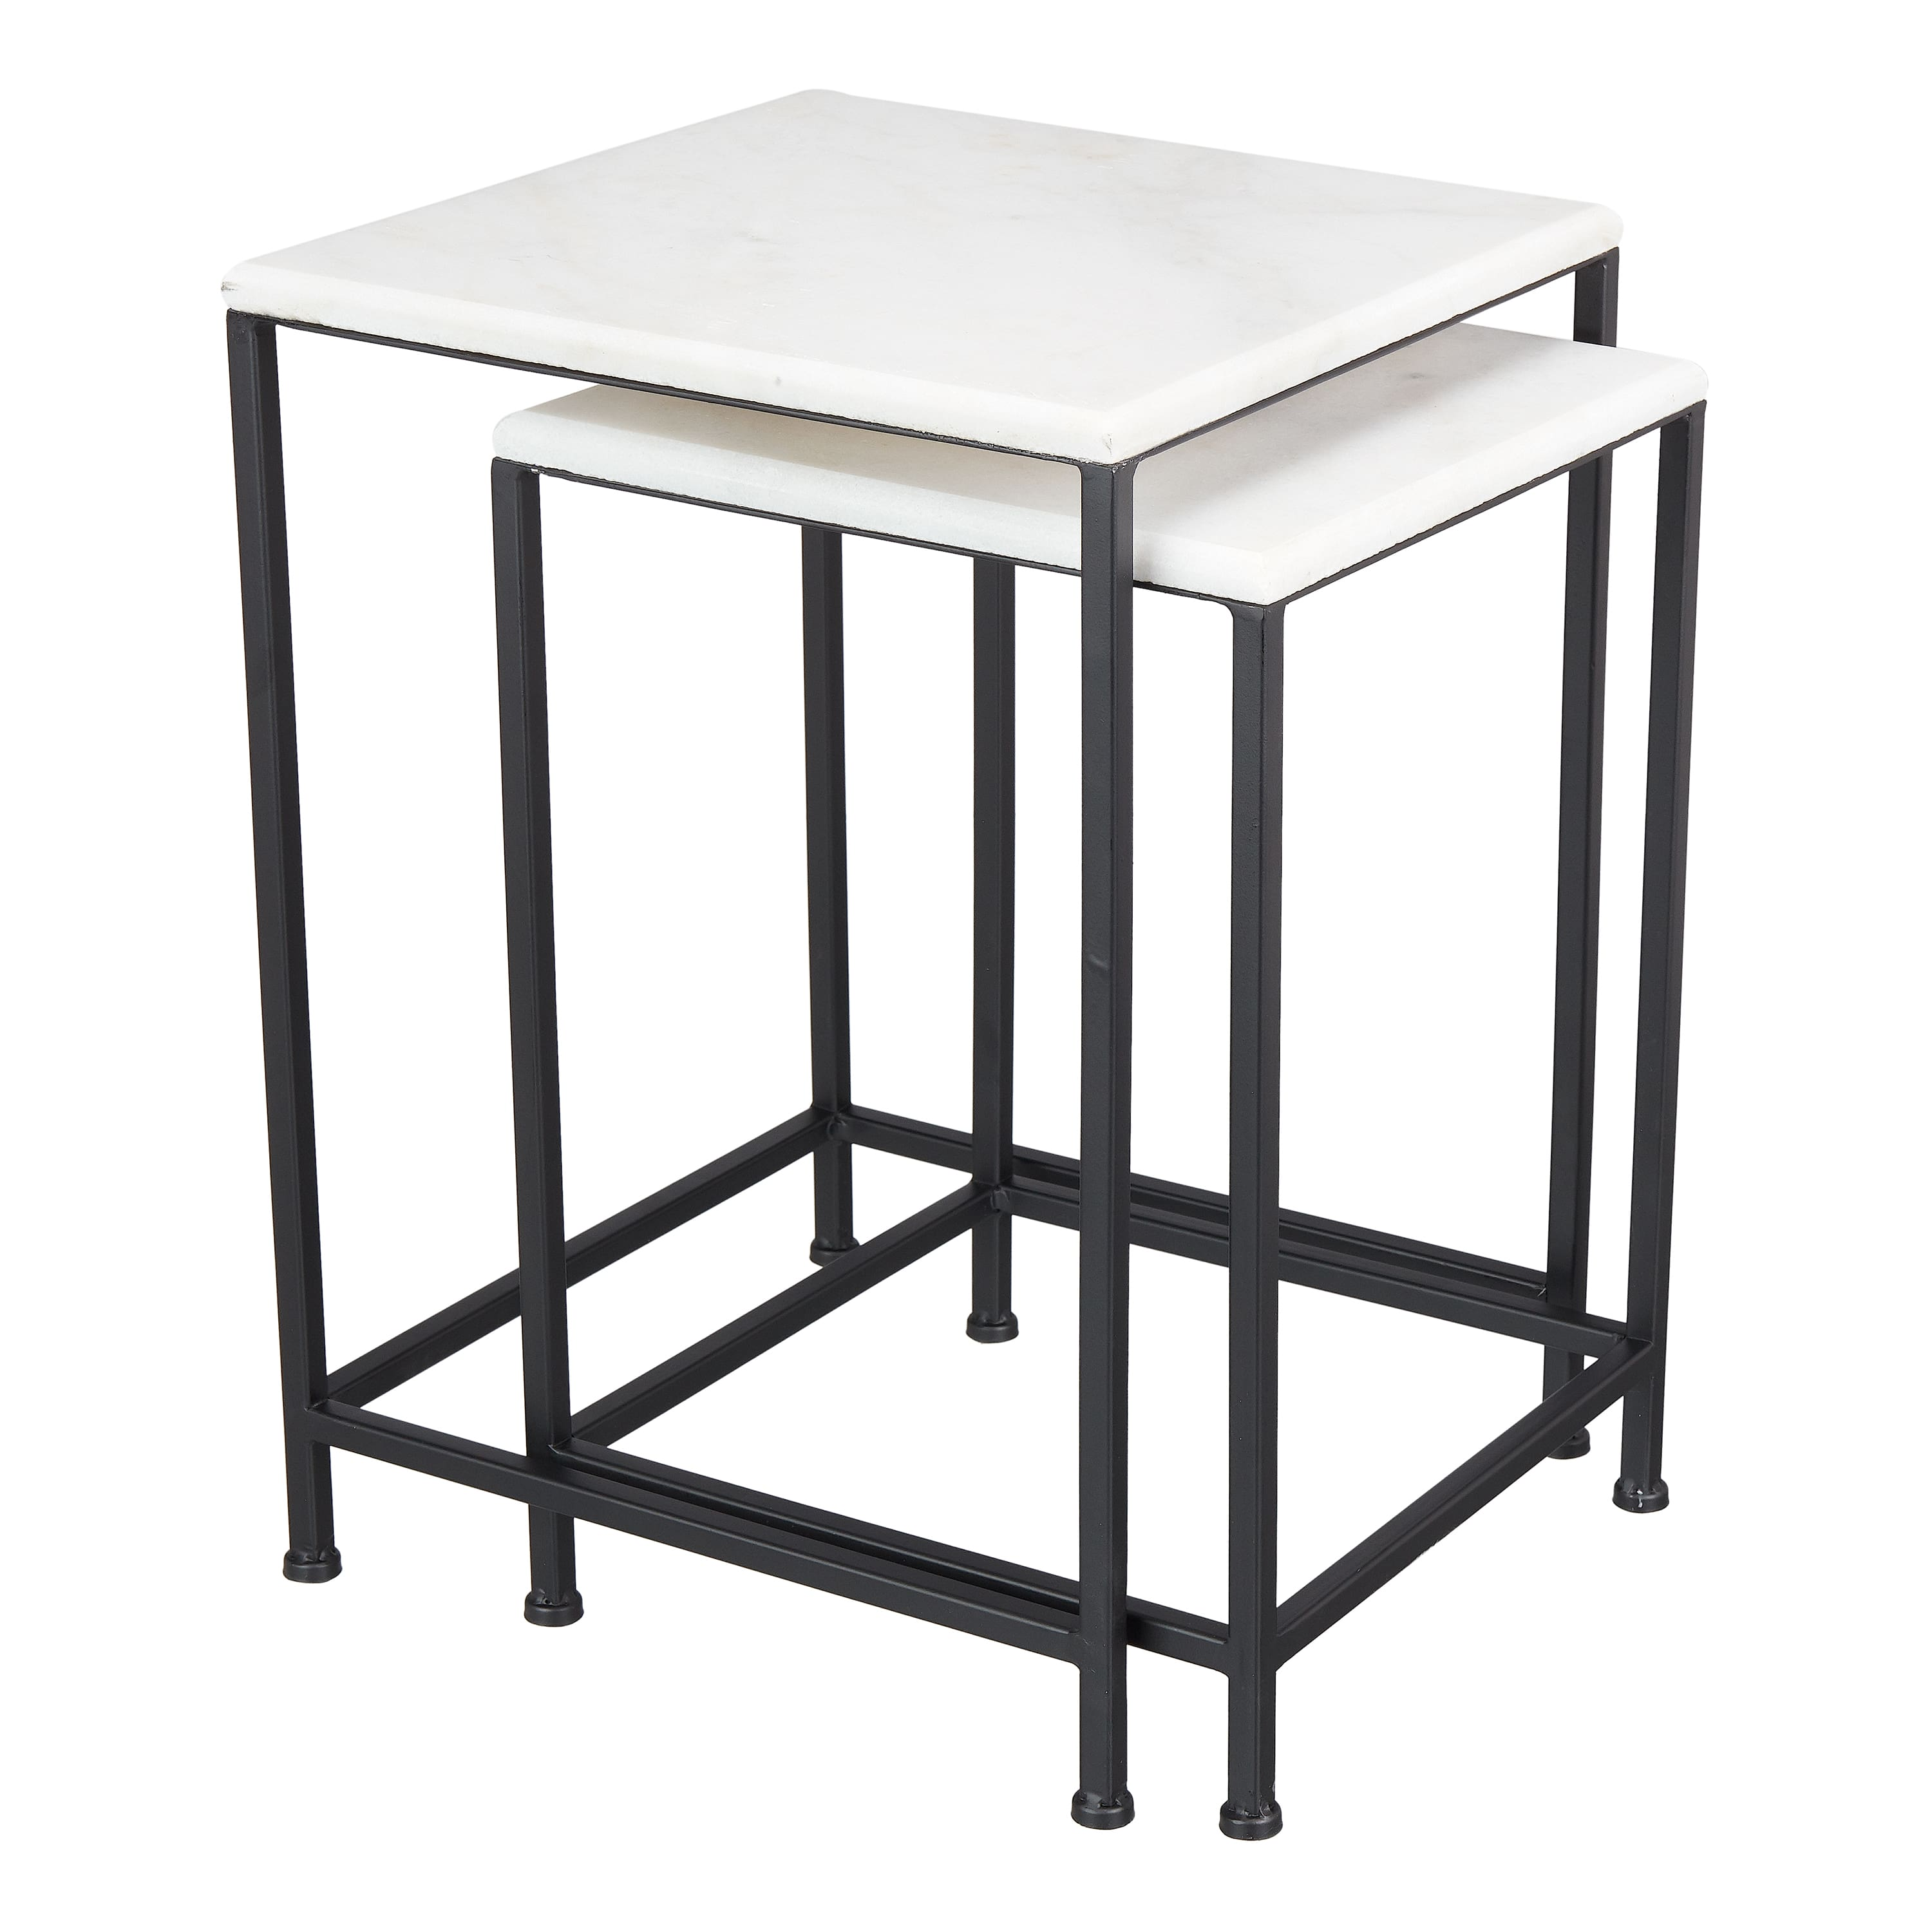 2-Pc Mainstays McKinley Heights Patio Nesting Table Set (white marble finish) $30 + Free Shipping $35+